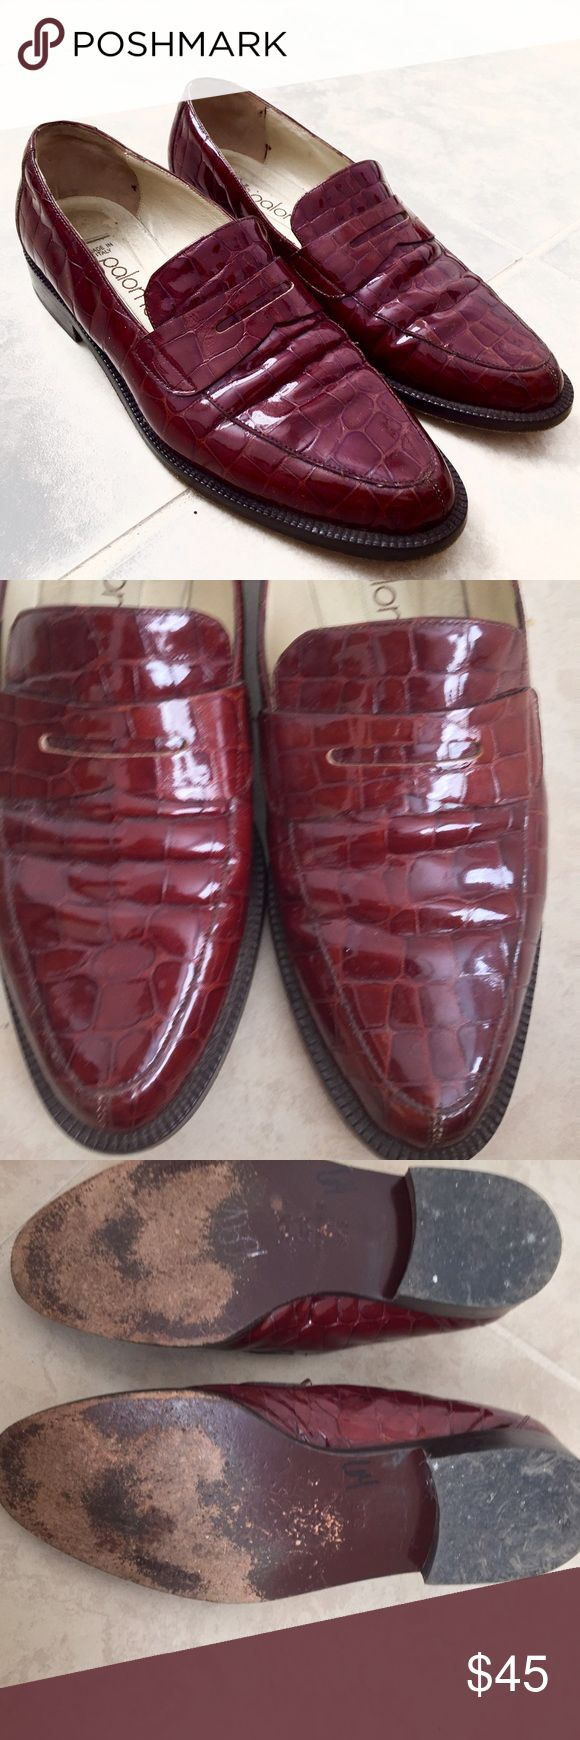 Vintage Cherry Red Italian Loafers Size 6 // .75 in. Heel // bought at vintage store in NYC Nasty Gal Shoes Flats & Loafers